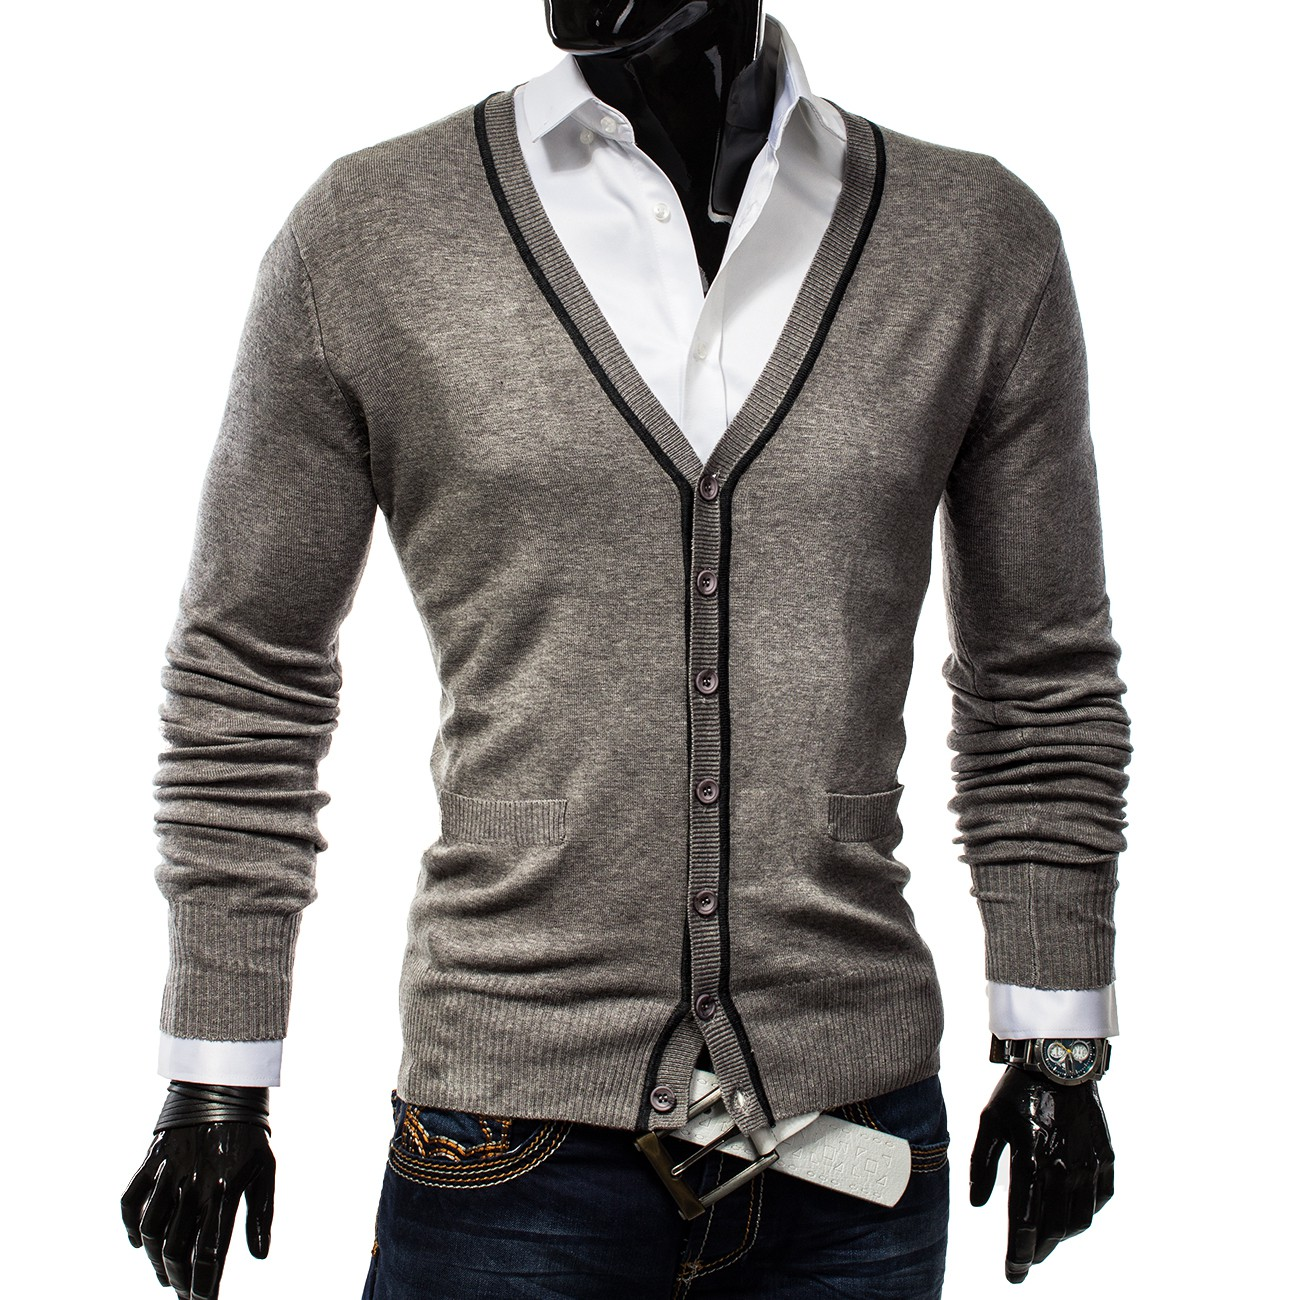 herren v neck cardigan pullover sweatshirt strickjacke v ausschnitt easy club ebay. Black Bedroom Furniture Sets. Home Design Ideas